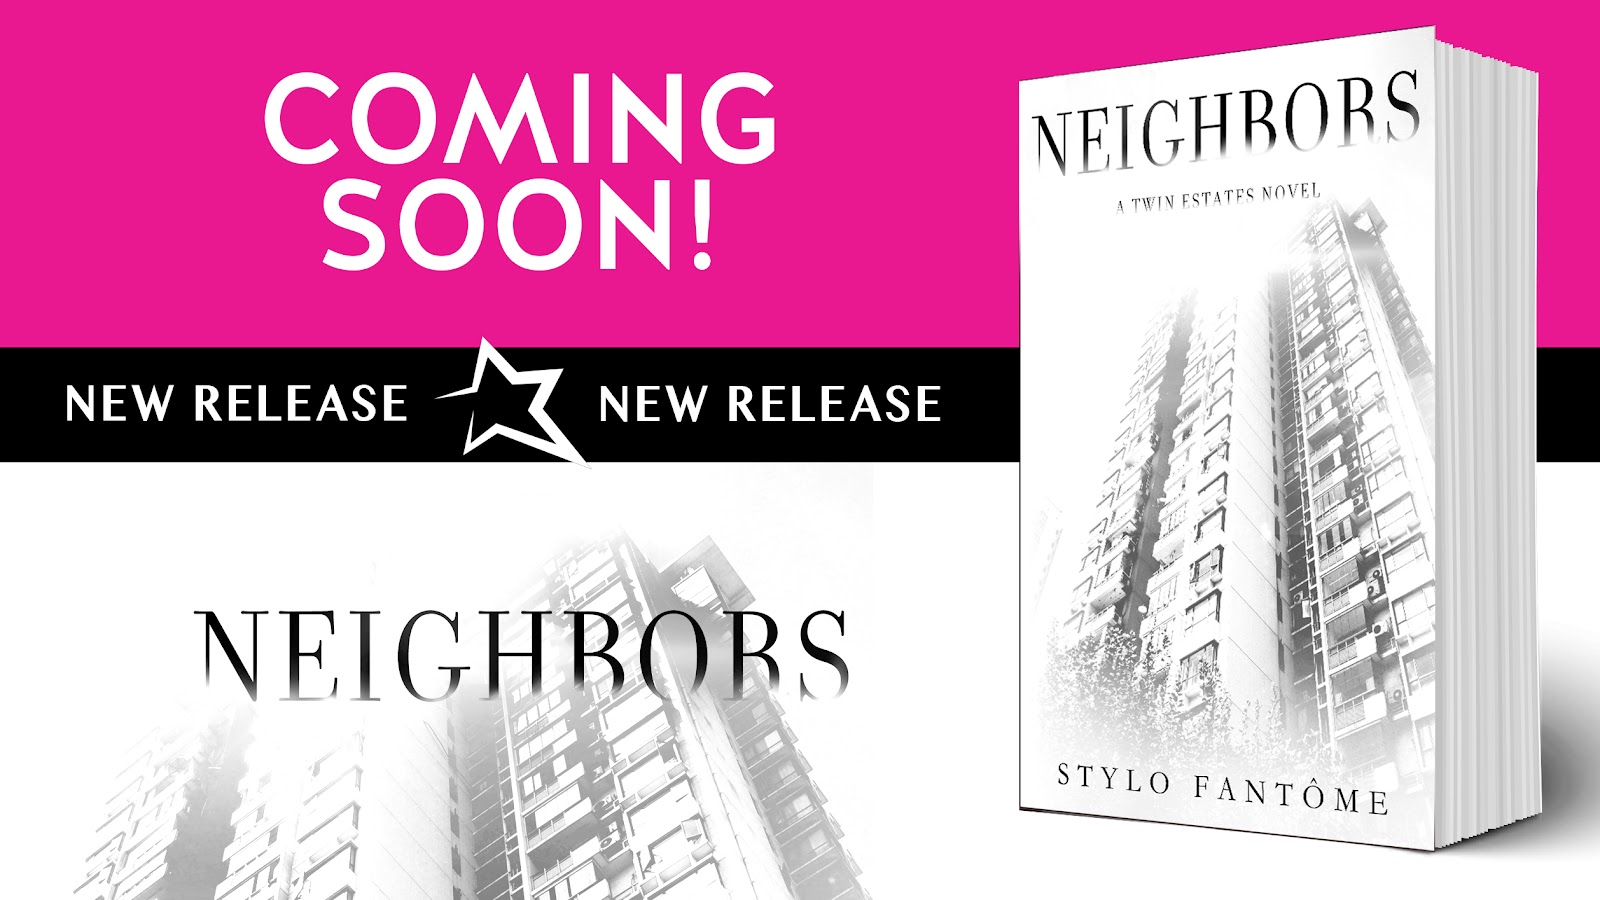 NEIGHBORS_COMING_SOON.jpg